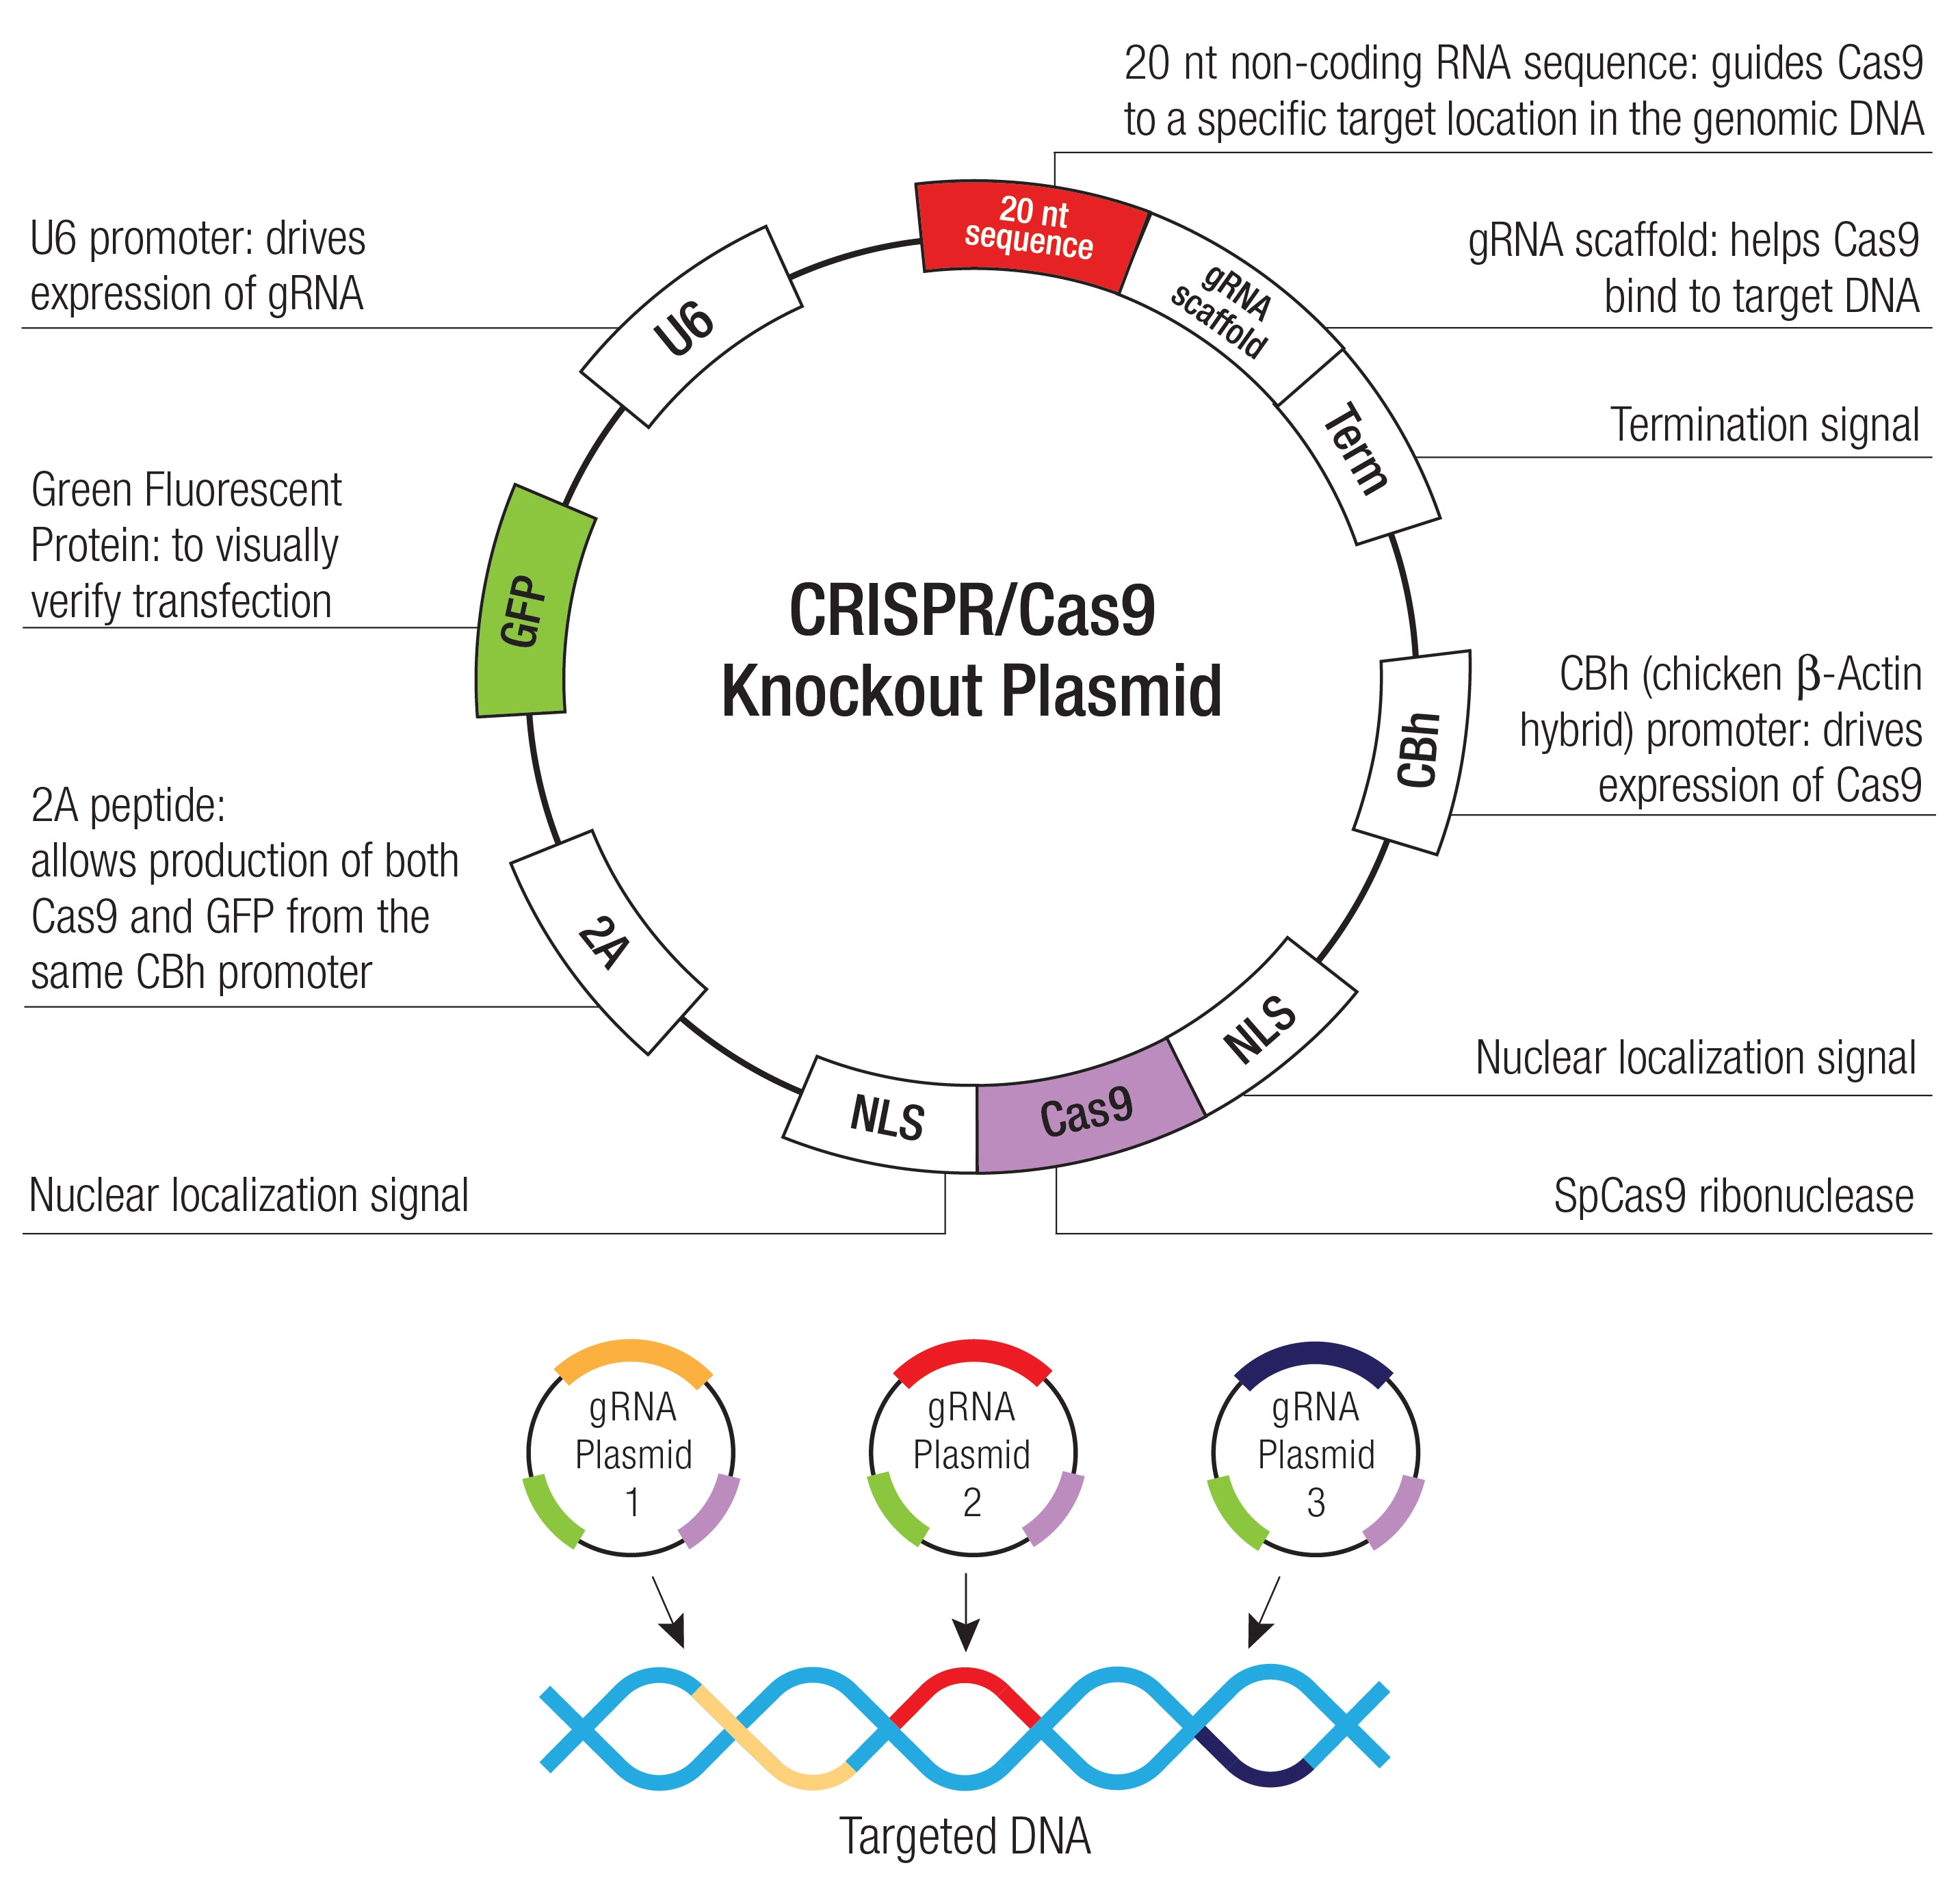 ASAH3L CRISPR Knockout and Activation Products (m)